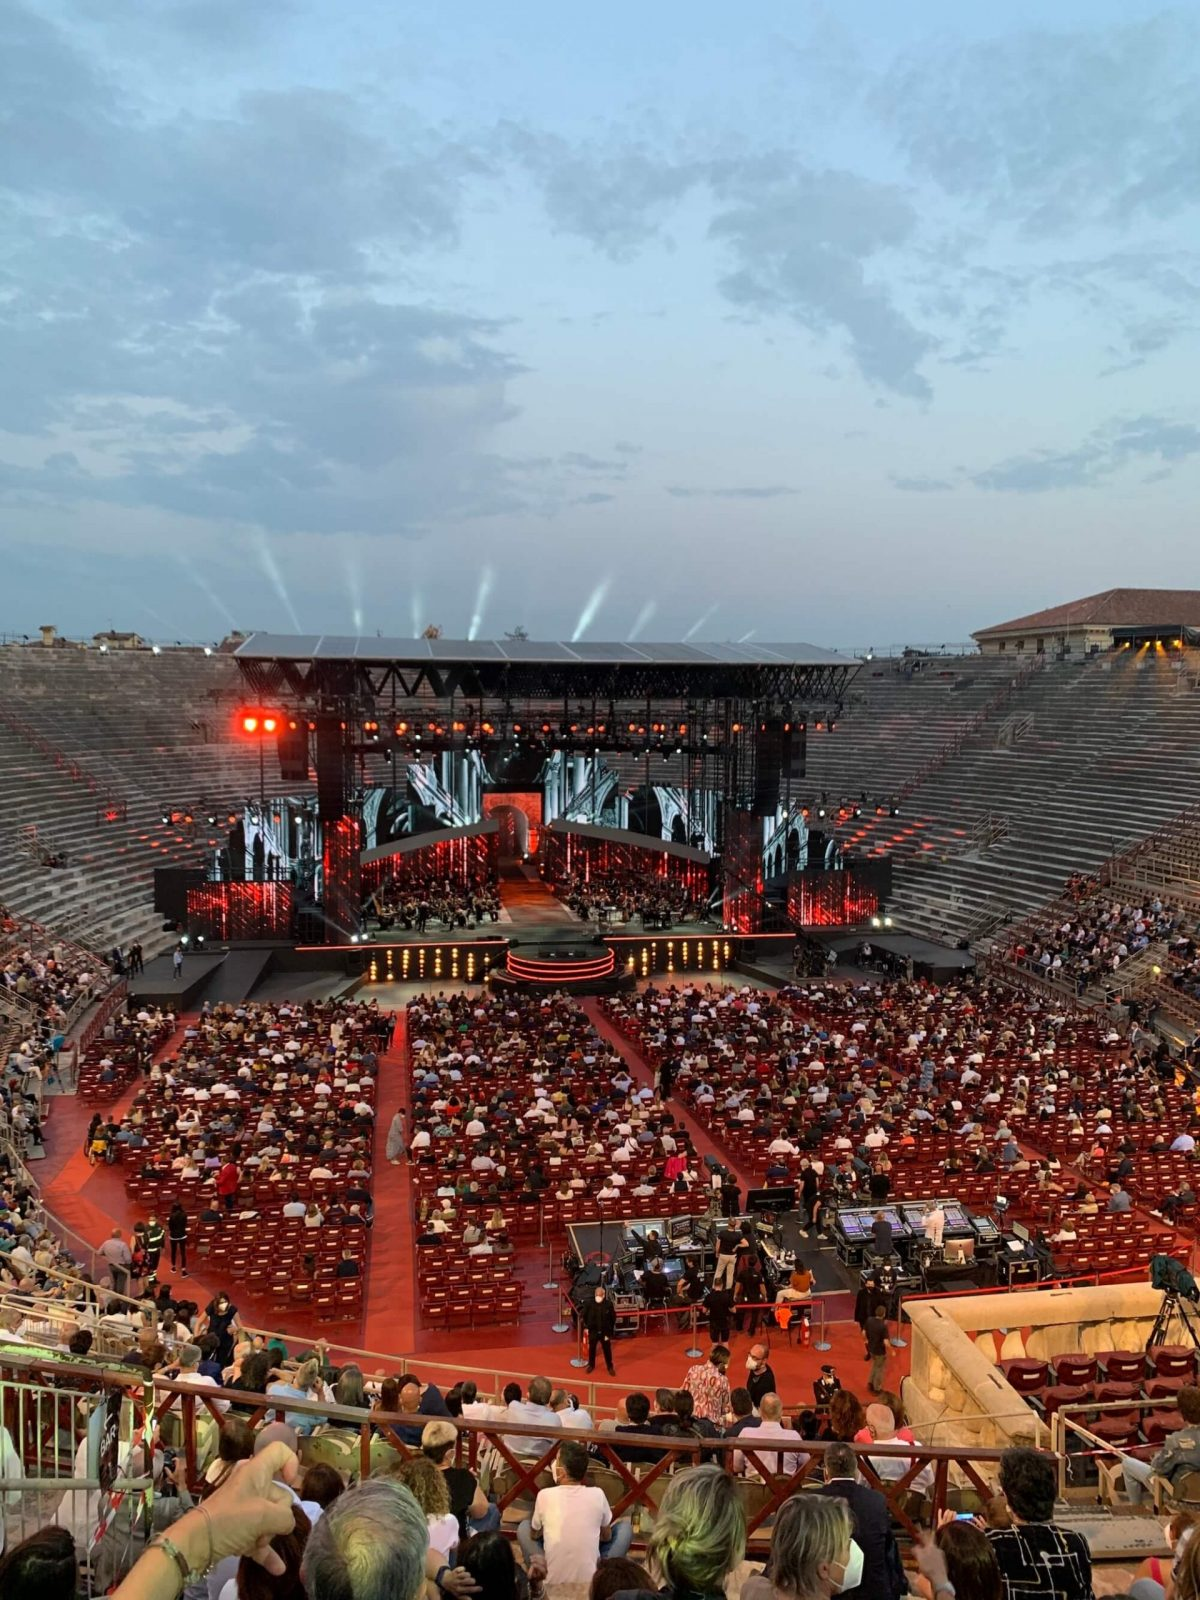 Travel guide to Verona: best things to see and do and where to eat